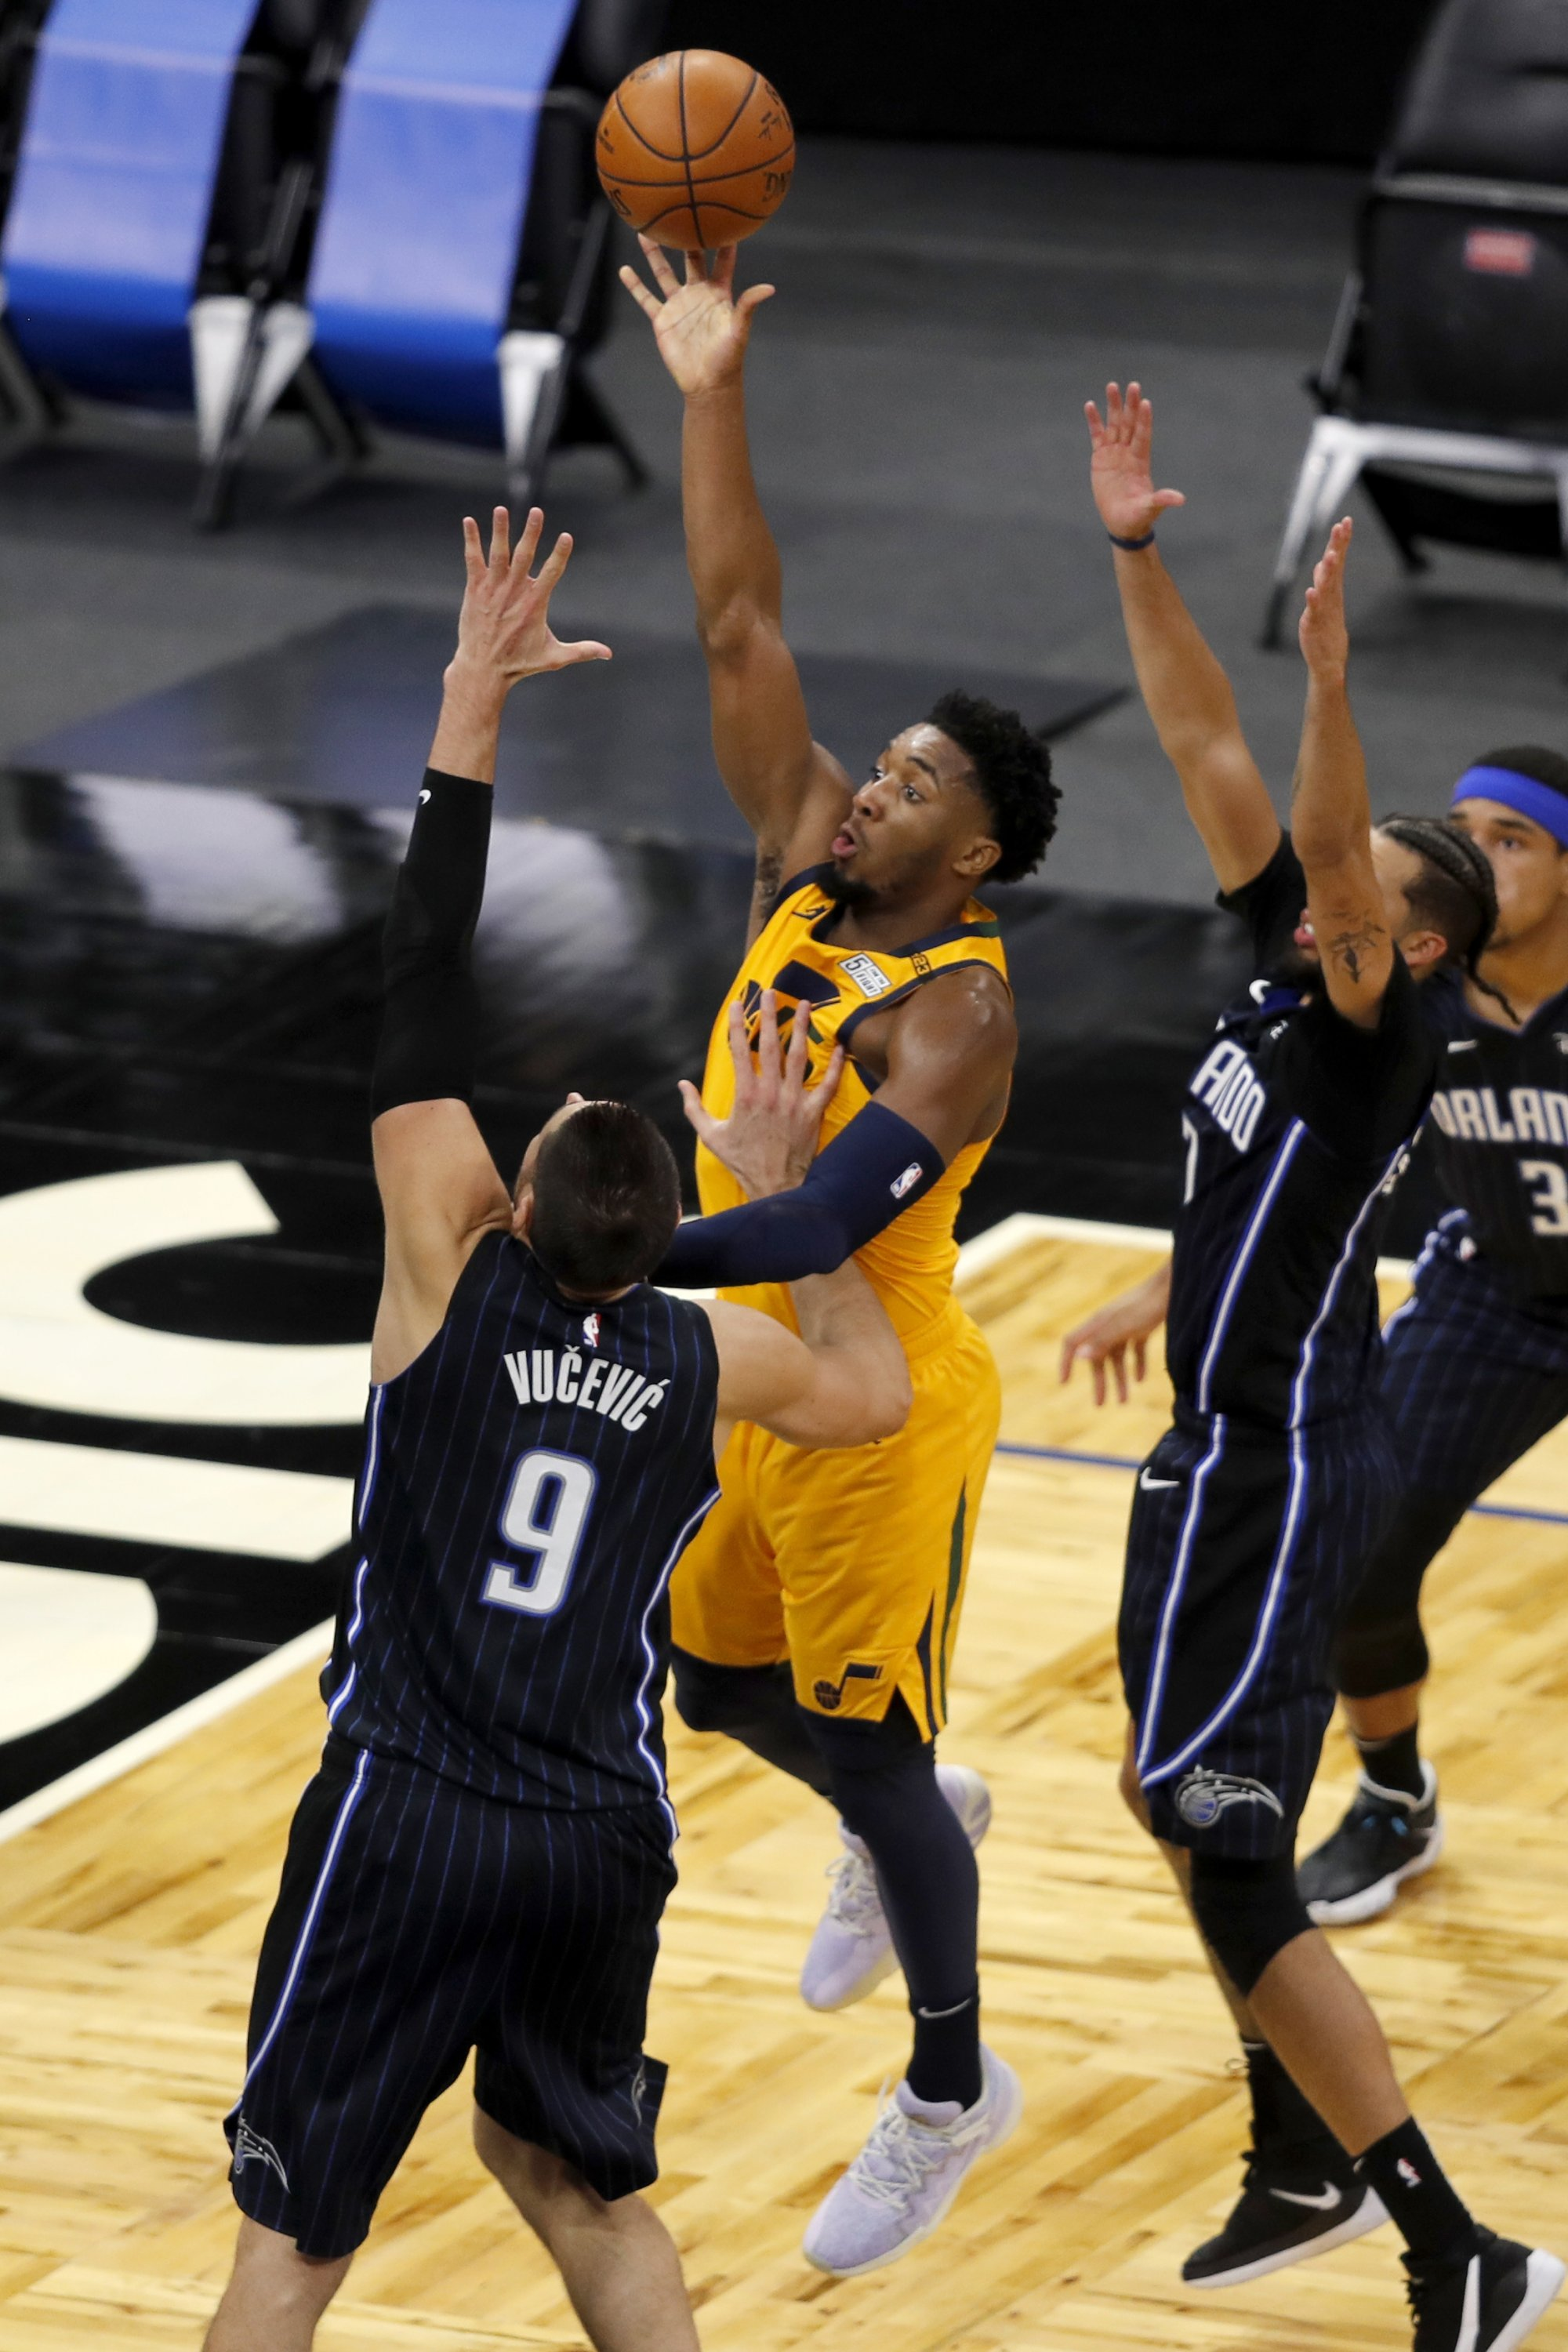 Guard Utah Jazz Donovan Mitchell (tengah) di Orlando Magic Center dalam pertandingan NBA di bawah tekanan Nicola Vusevic (kiri) dan guard Michael Carter-Williams (kanan), Orlando, Florida, 27 Februari 2021. (Foto AP)